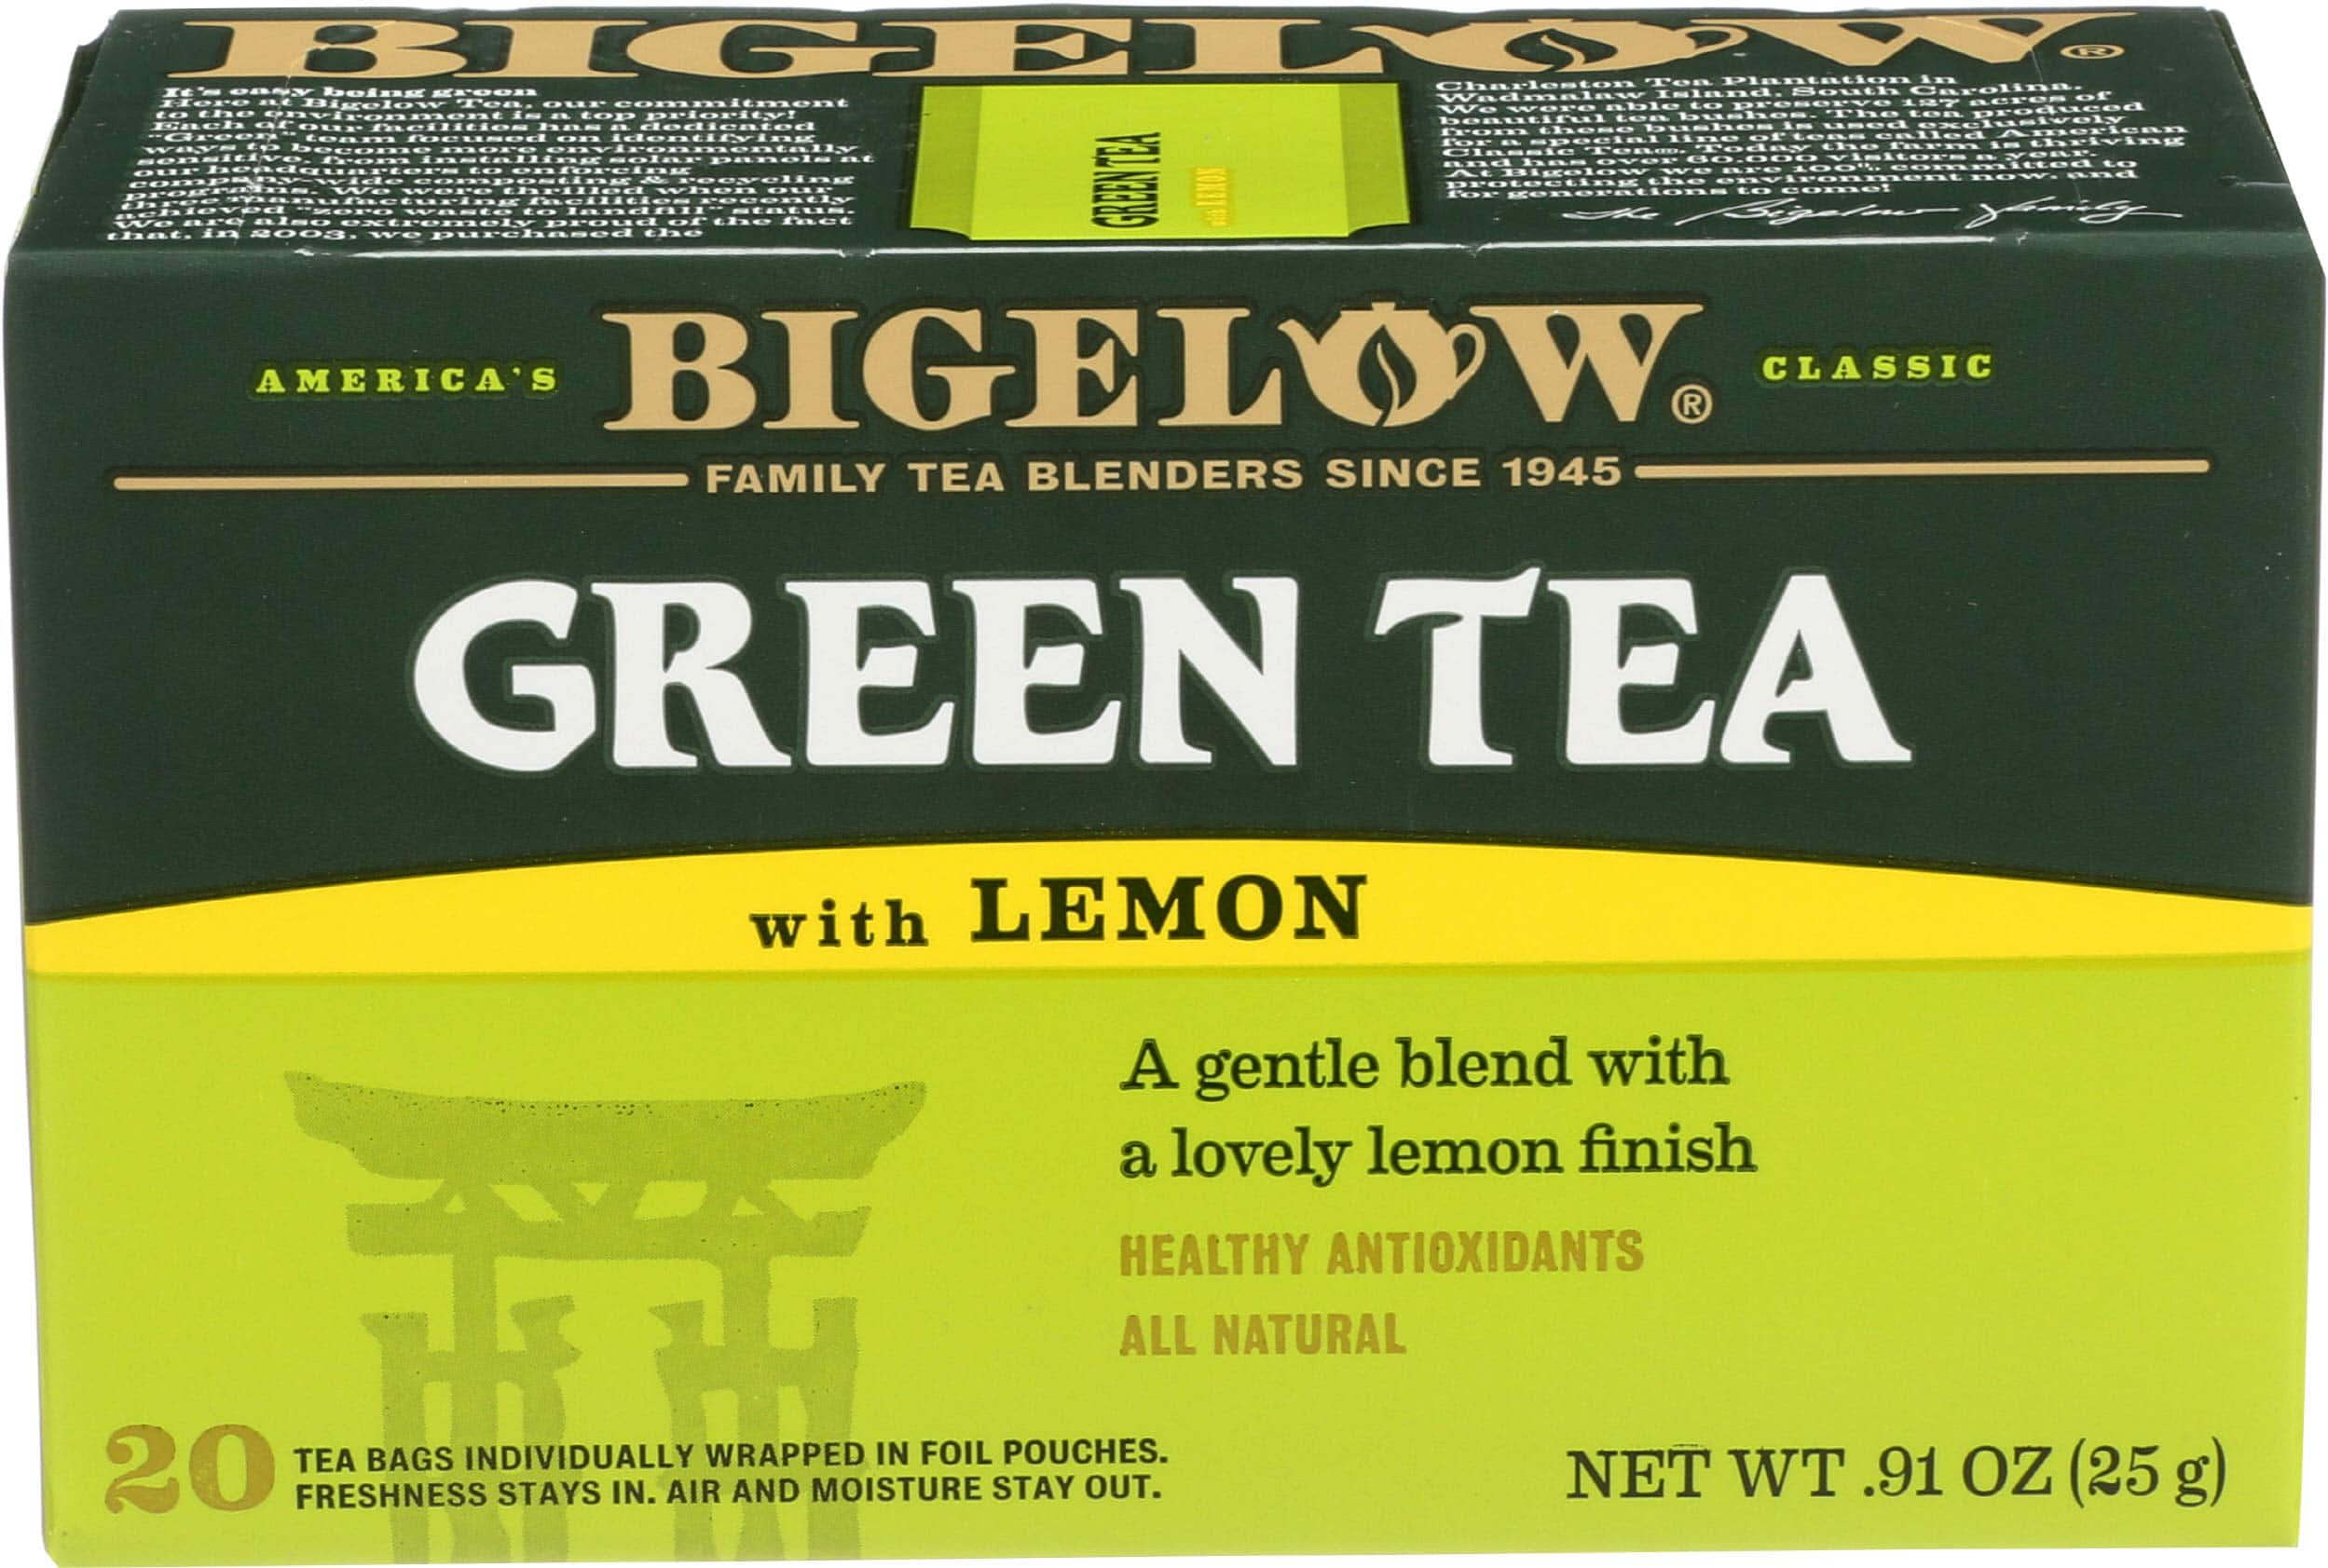 Bigelow, Green Tea With Lemon (Caffeinated), 20 Count pack of 6 (120 bags total) for $2.67 with free prime shipping at Amazon